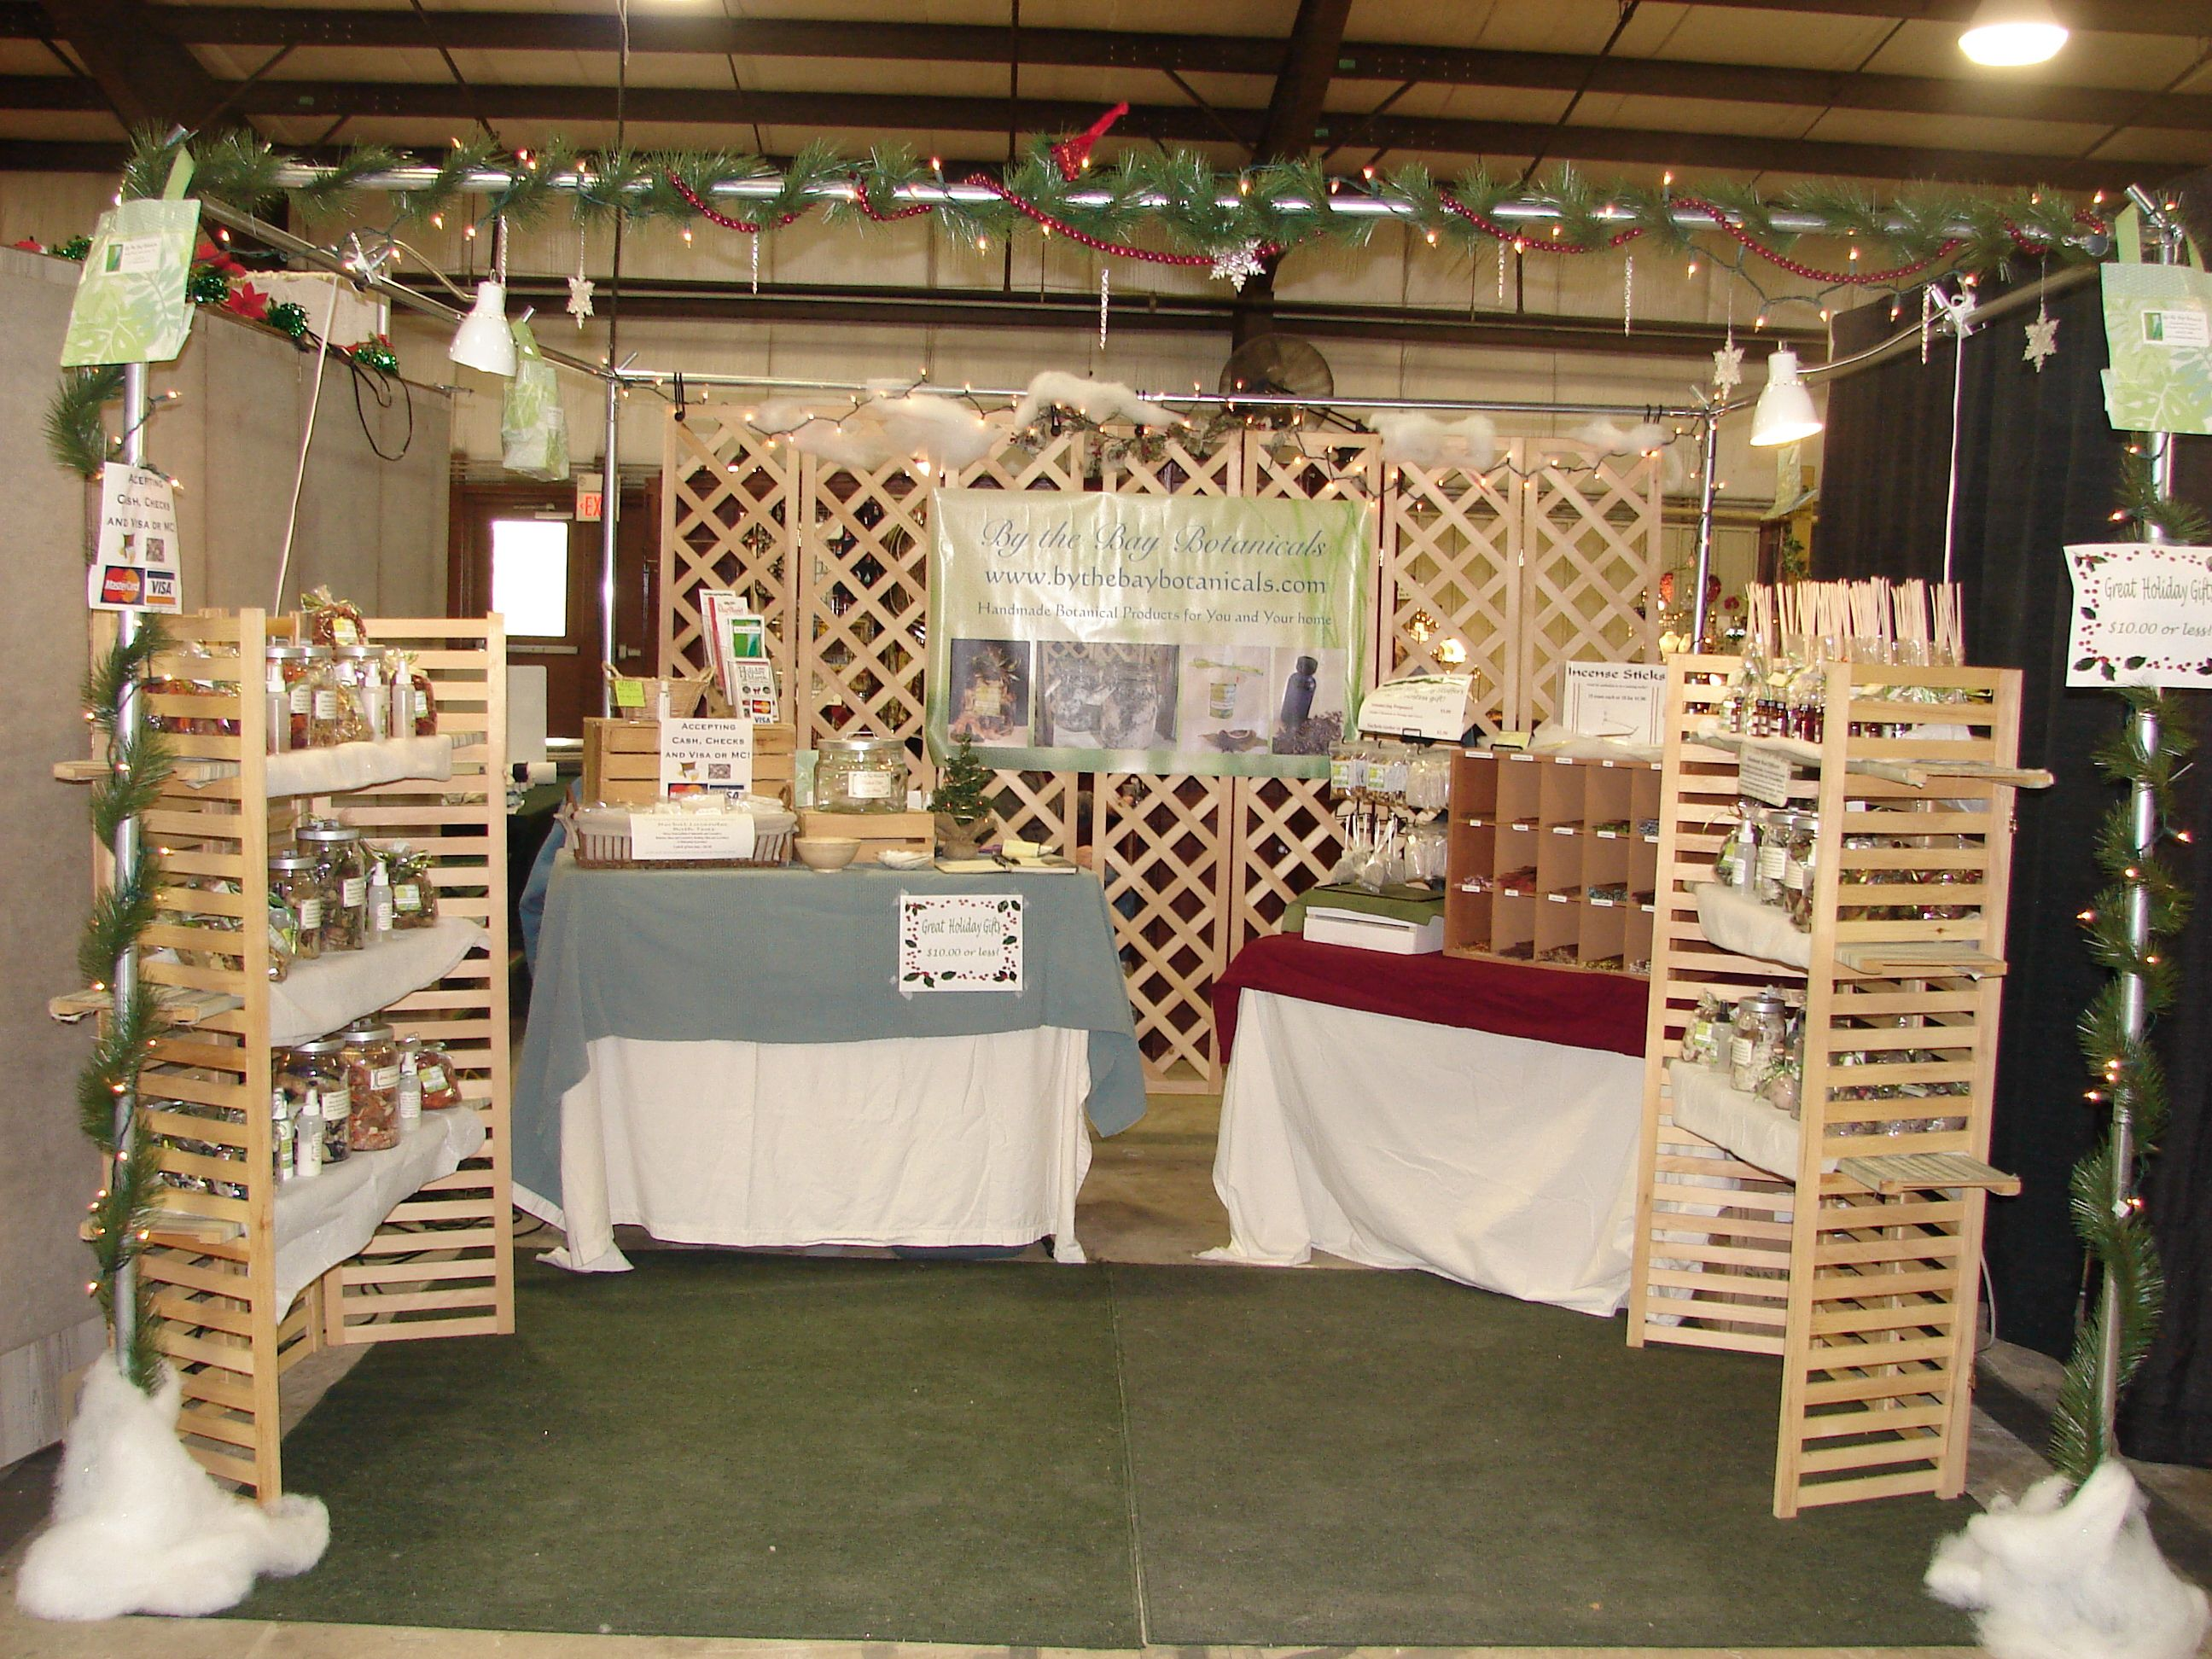 Photo Booth Design Ideas 191 best images about boutiquemarket stall ideas on pinterest crafts tables and market stalls Craftboothdisplayideas Here S A Pic Of My Christmas Booth Display